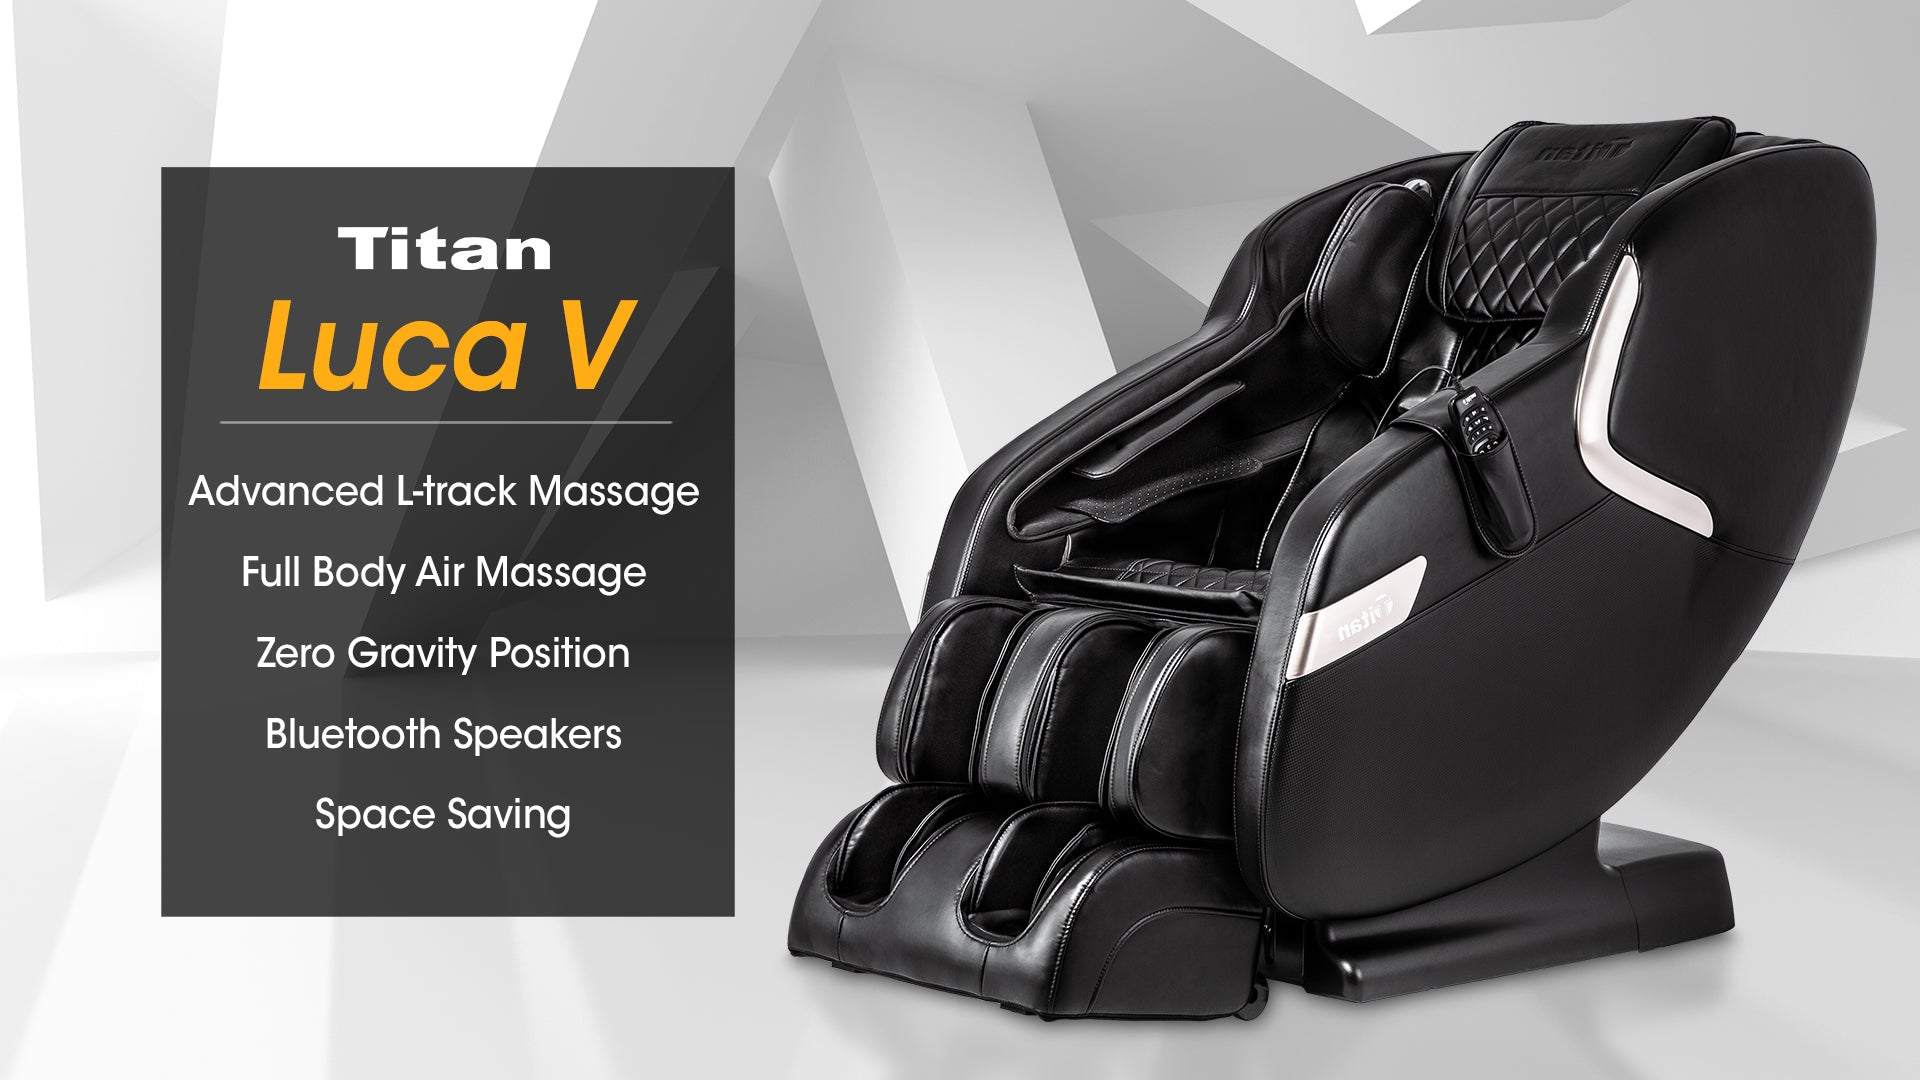 Titan Luca V Banner - Advanced L Track Massage, Full body Air Massage, Zero Gravity Position, Bluetooth Speakers, Space saving